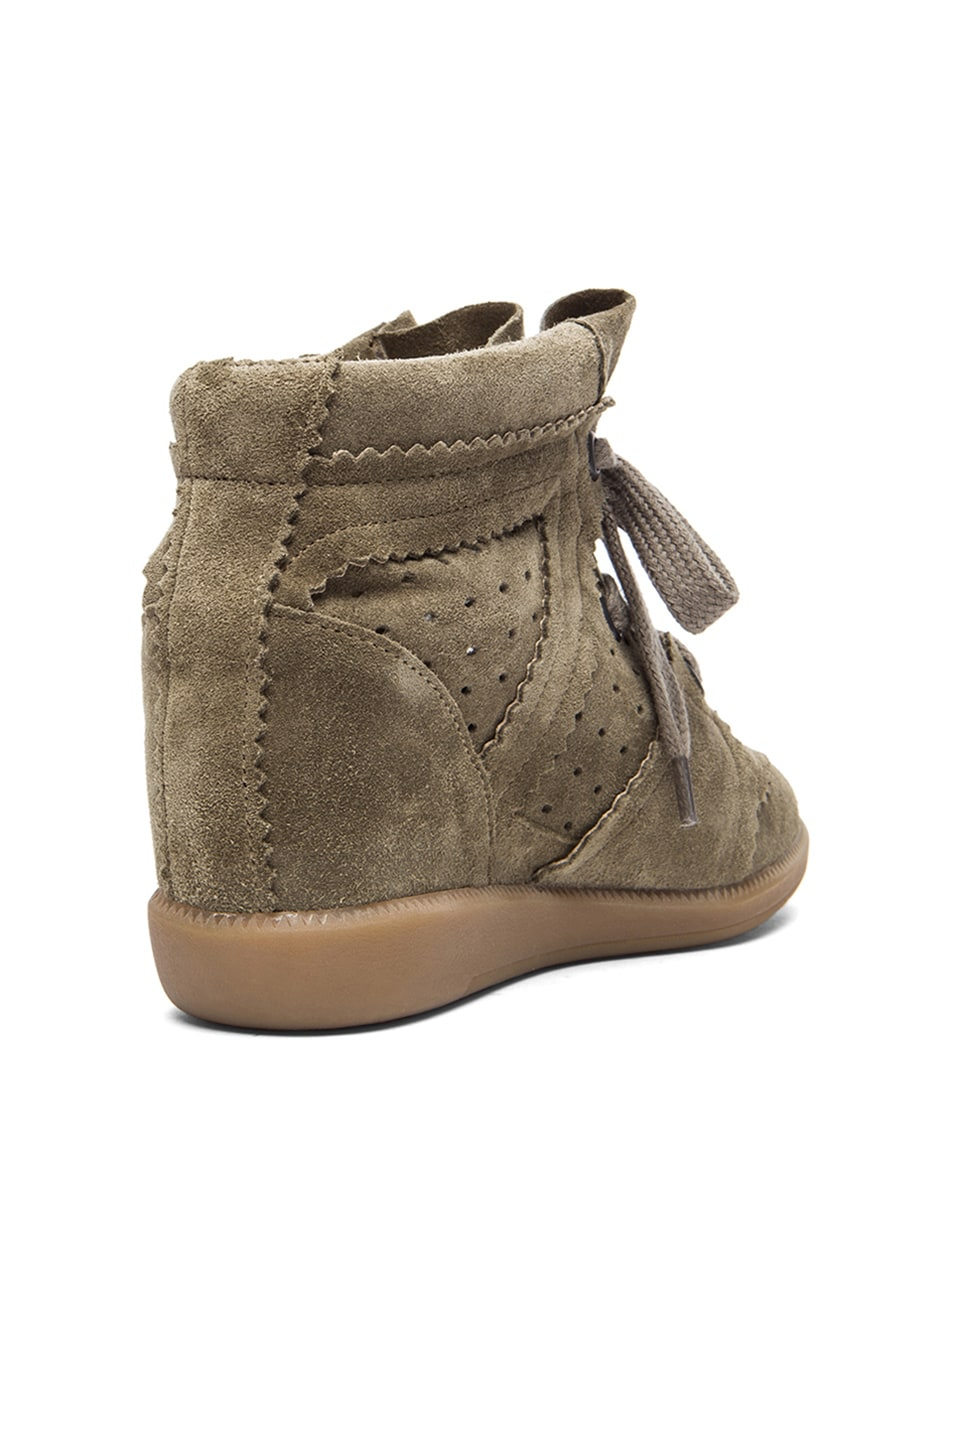 Image 3 of Isabel Marant Bobby Calfskin Velvet Leather Sneakers in Taupe